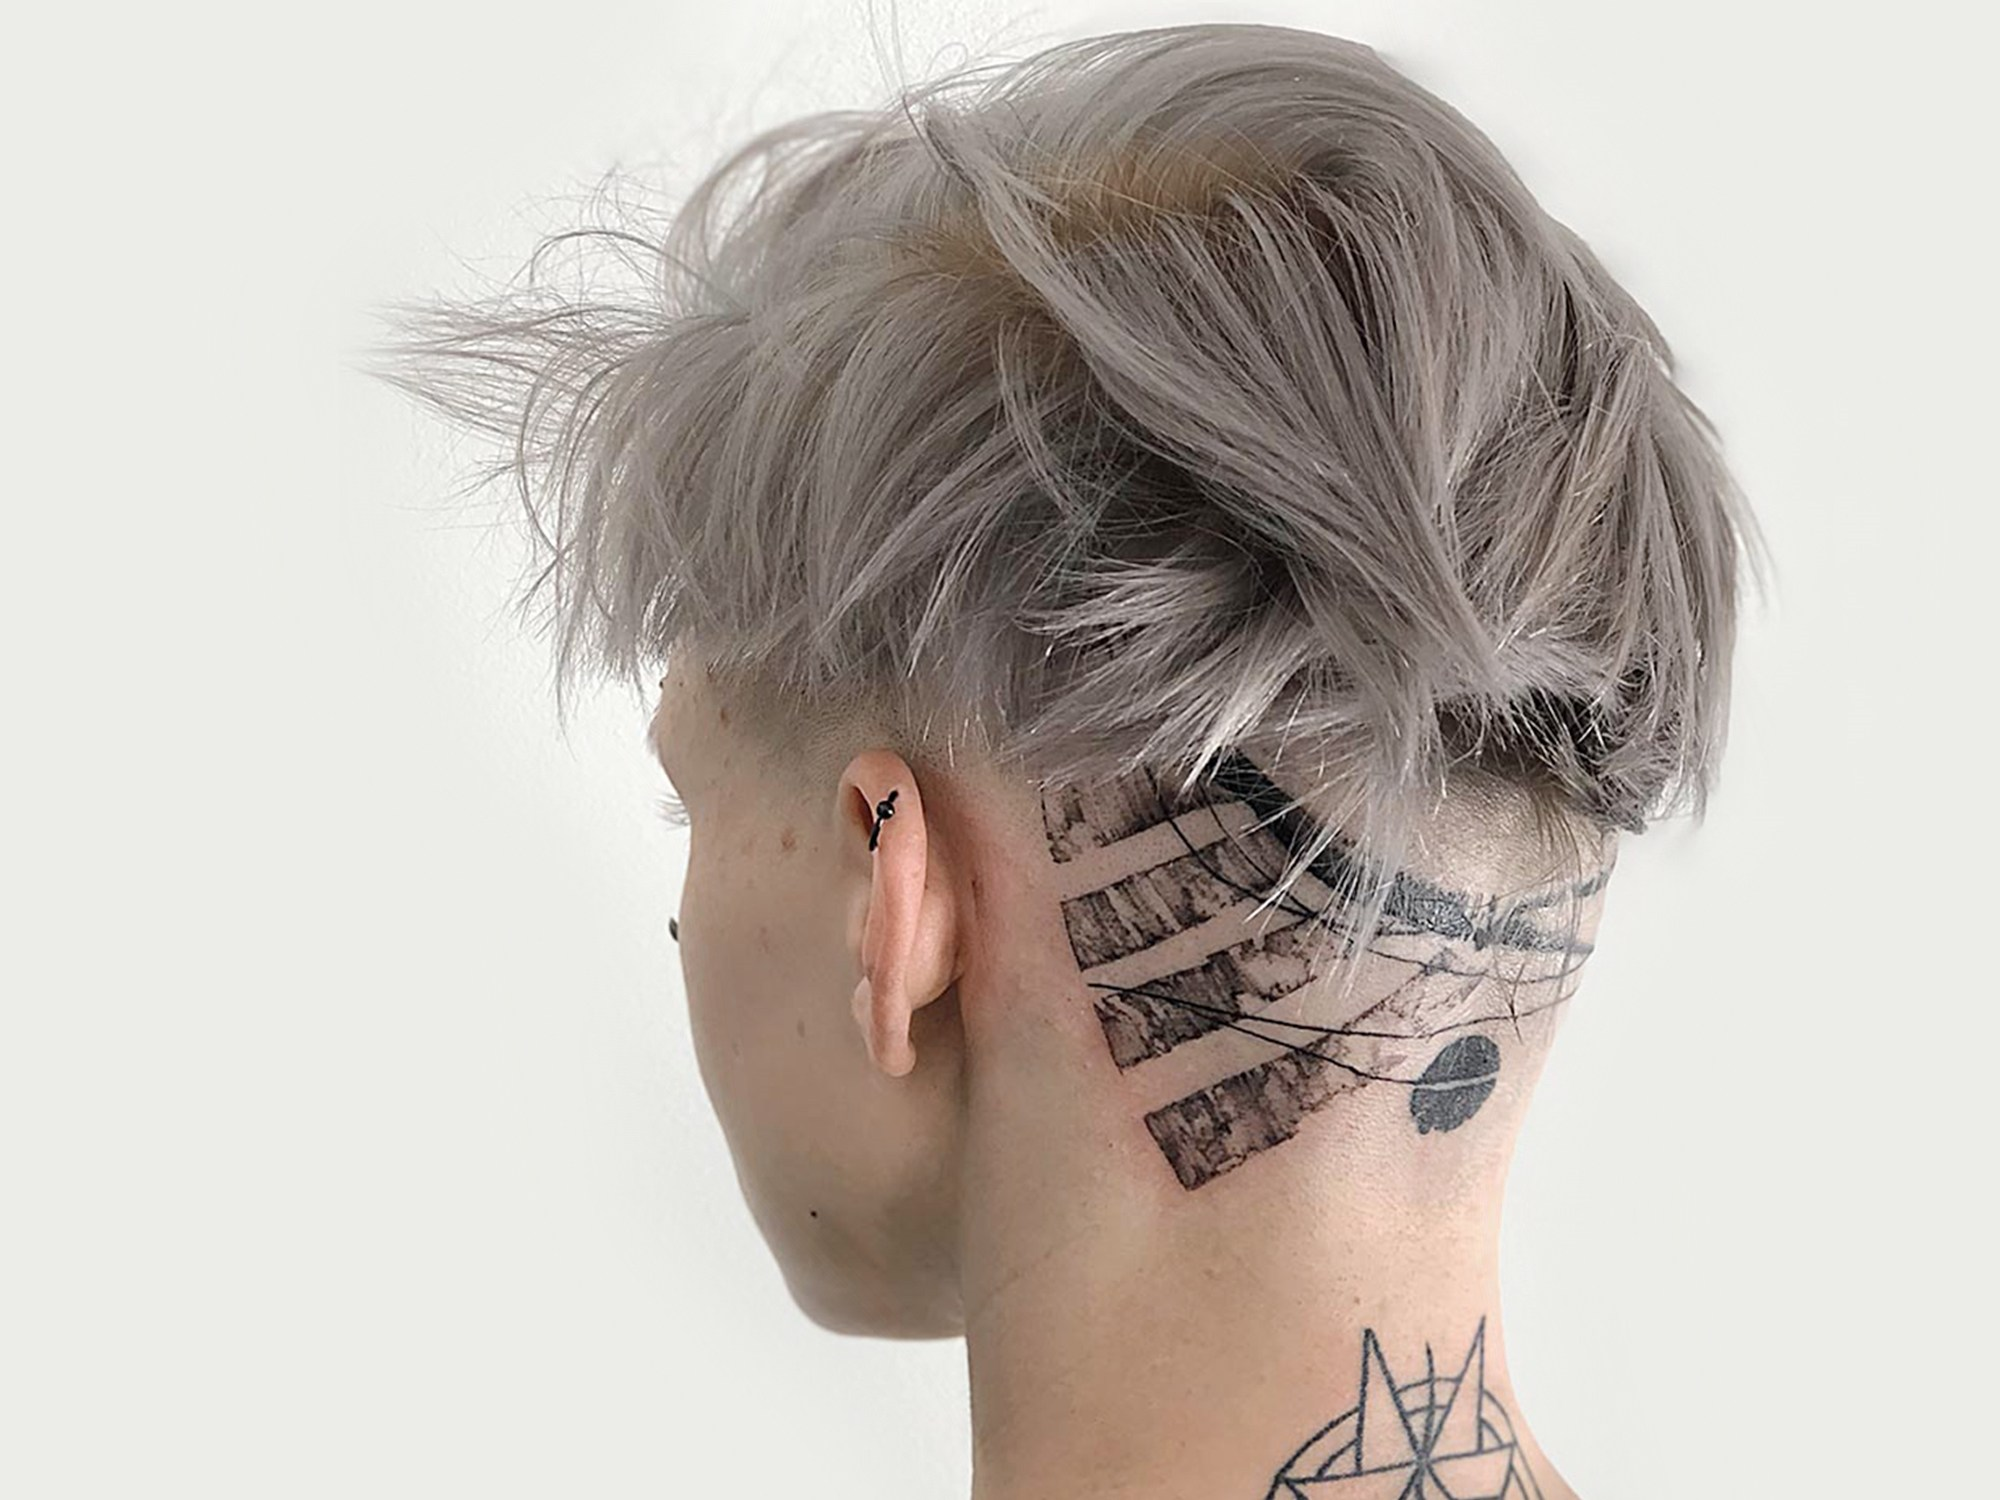 Head tattoo on by Artem Koro, abstract blackwork